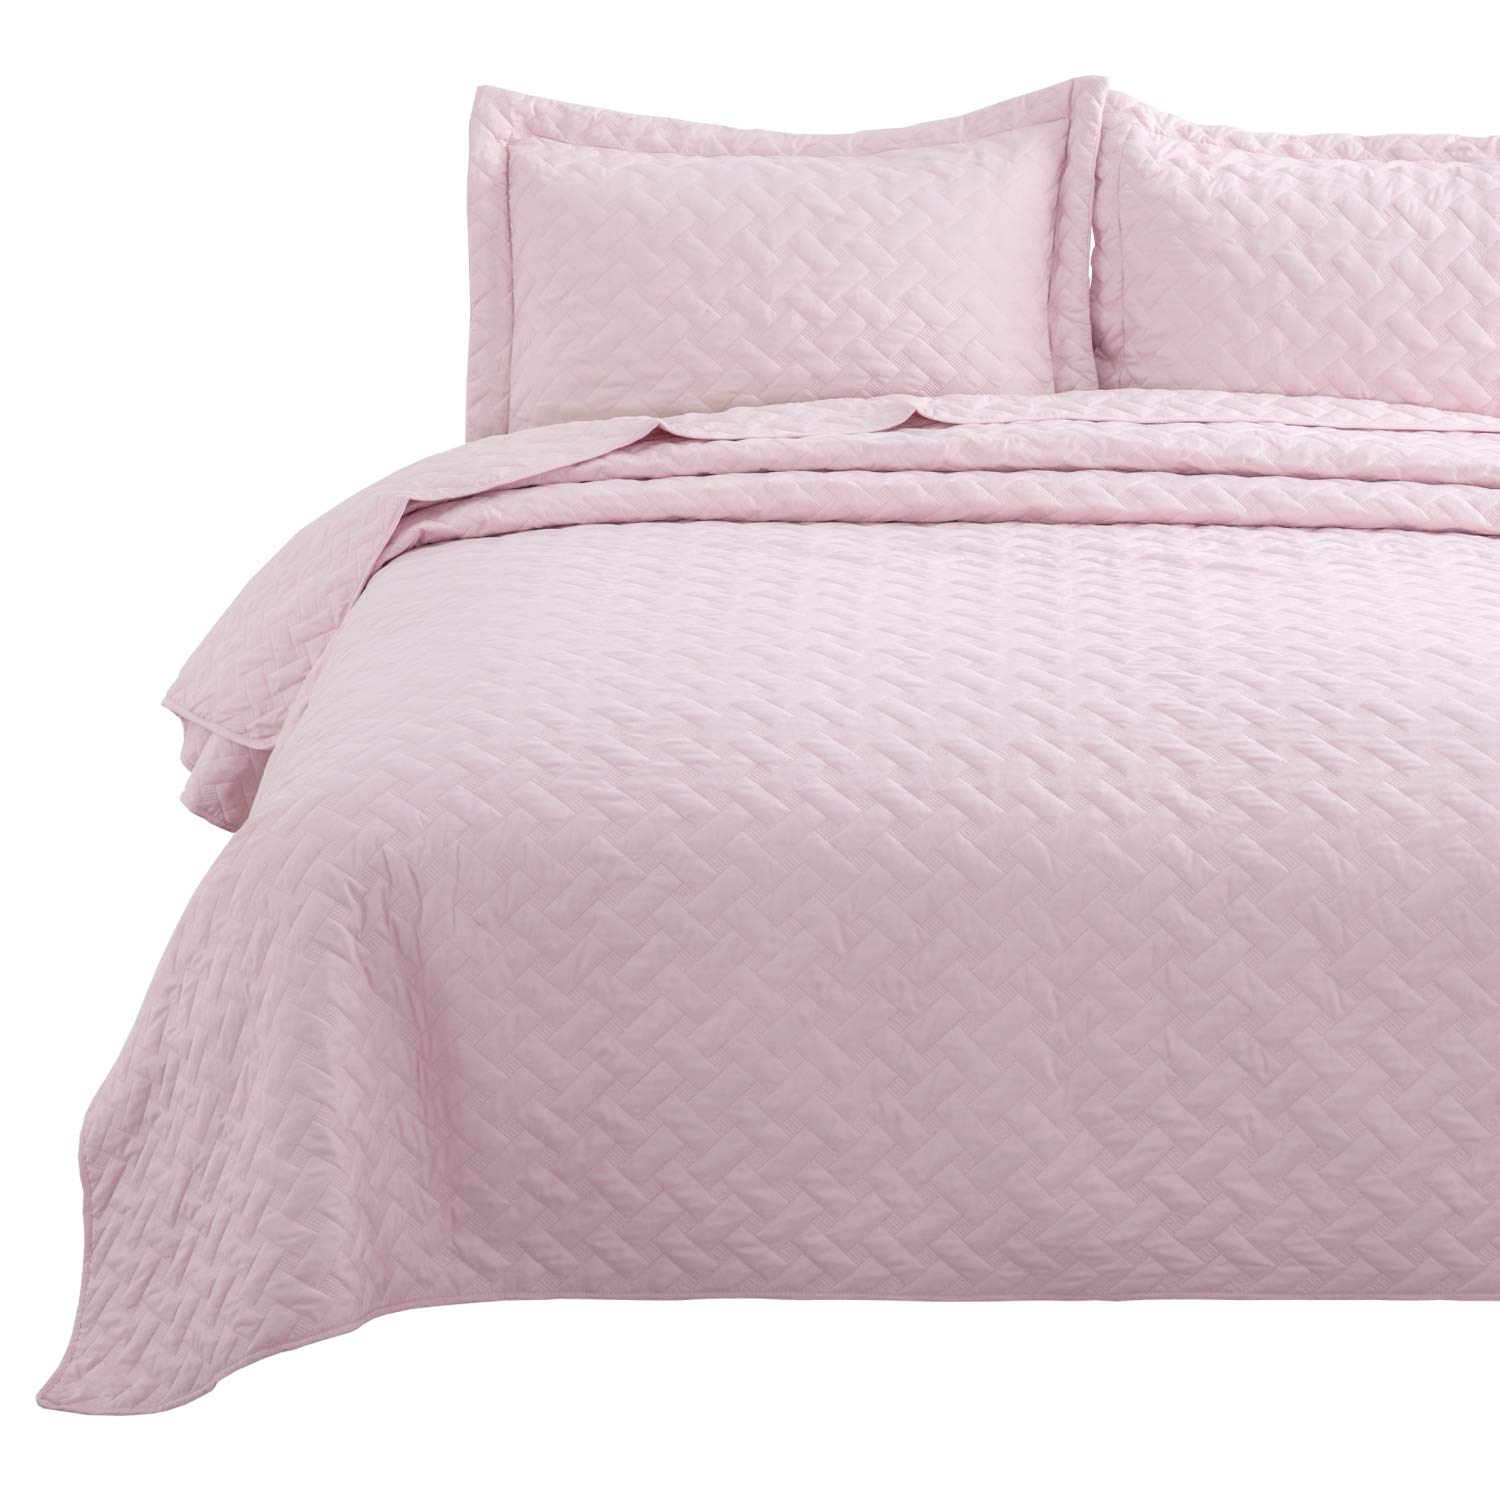 Bedsure Quilt Set Pink King Size (106x96 inches) - Basket Weave Pattern Bedspread - Soft Microfiber Lightweight Coverlet for All Season - 3 Pieces (Includes 1 Quilt, 2 Shams)